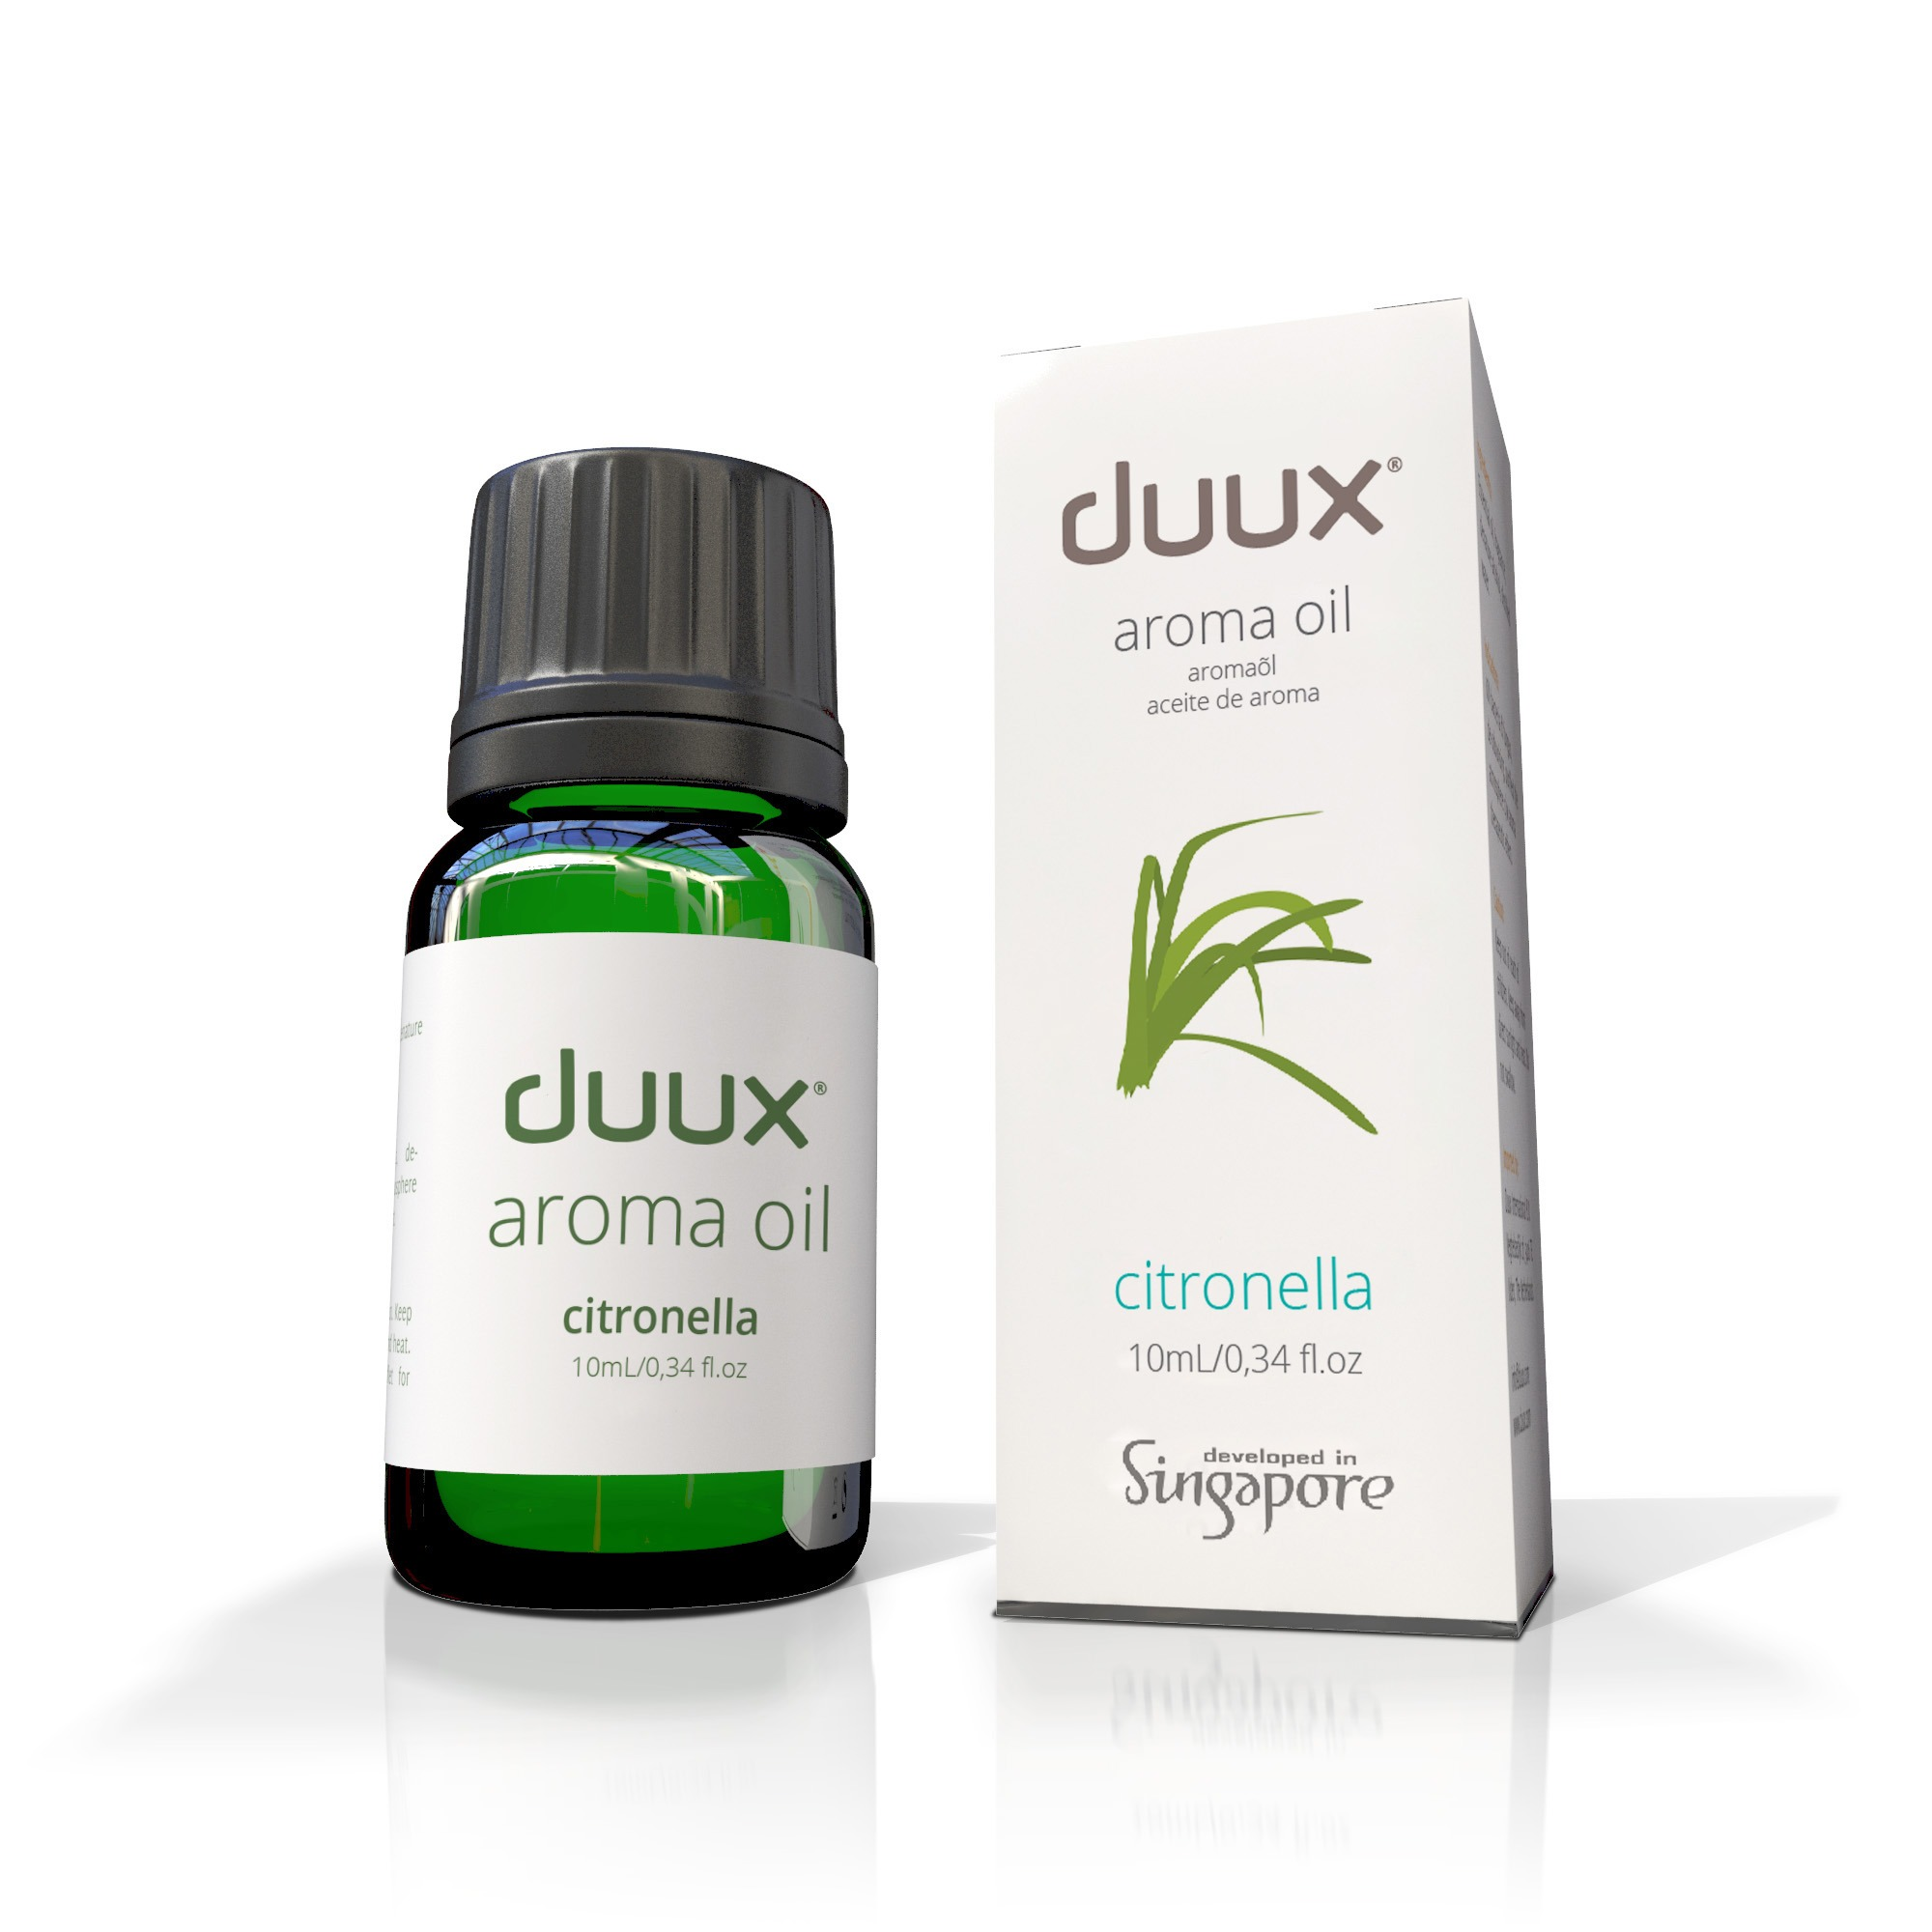 Korting Duux Aromatherapy Citronella for Air Purifier klimaat accessoire